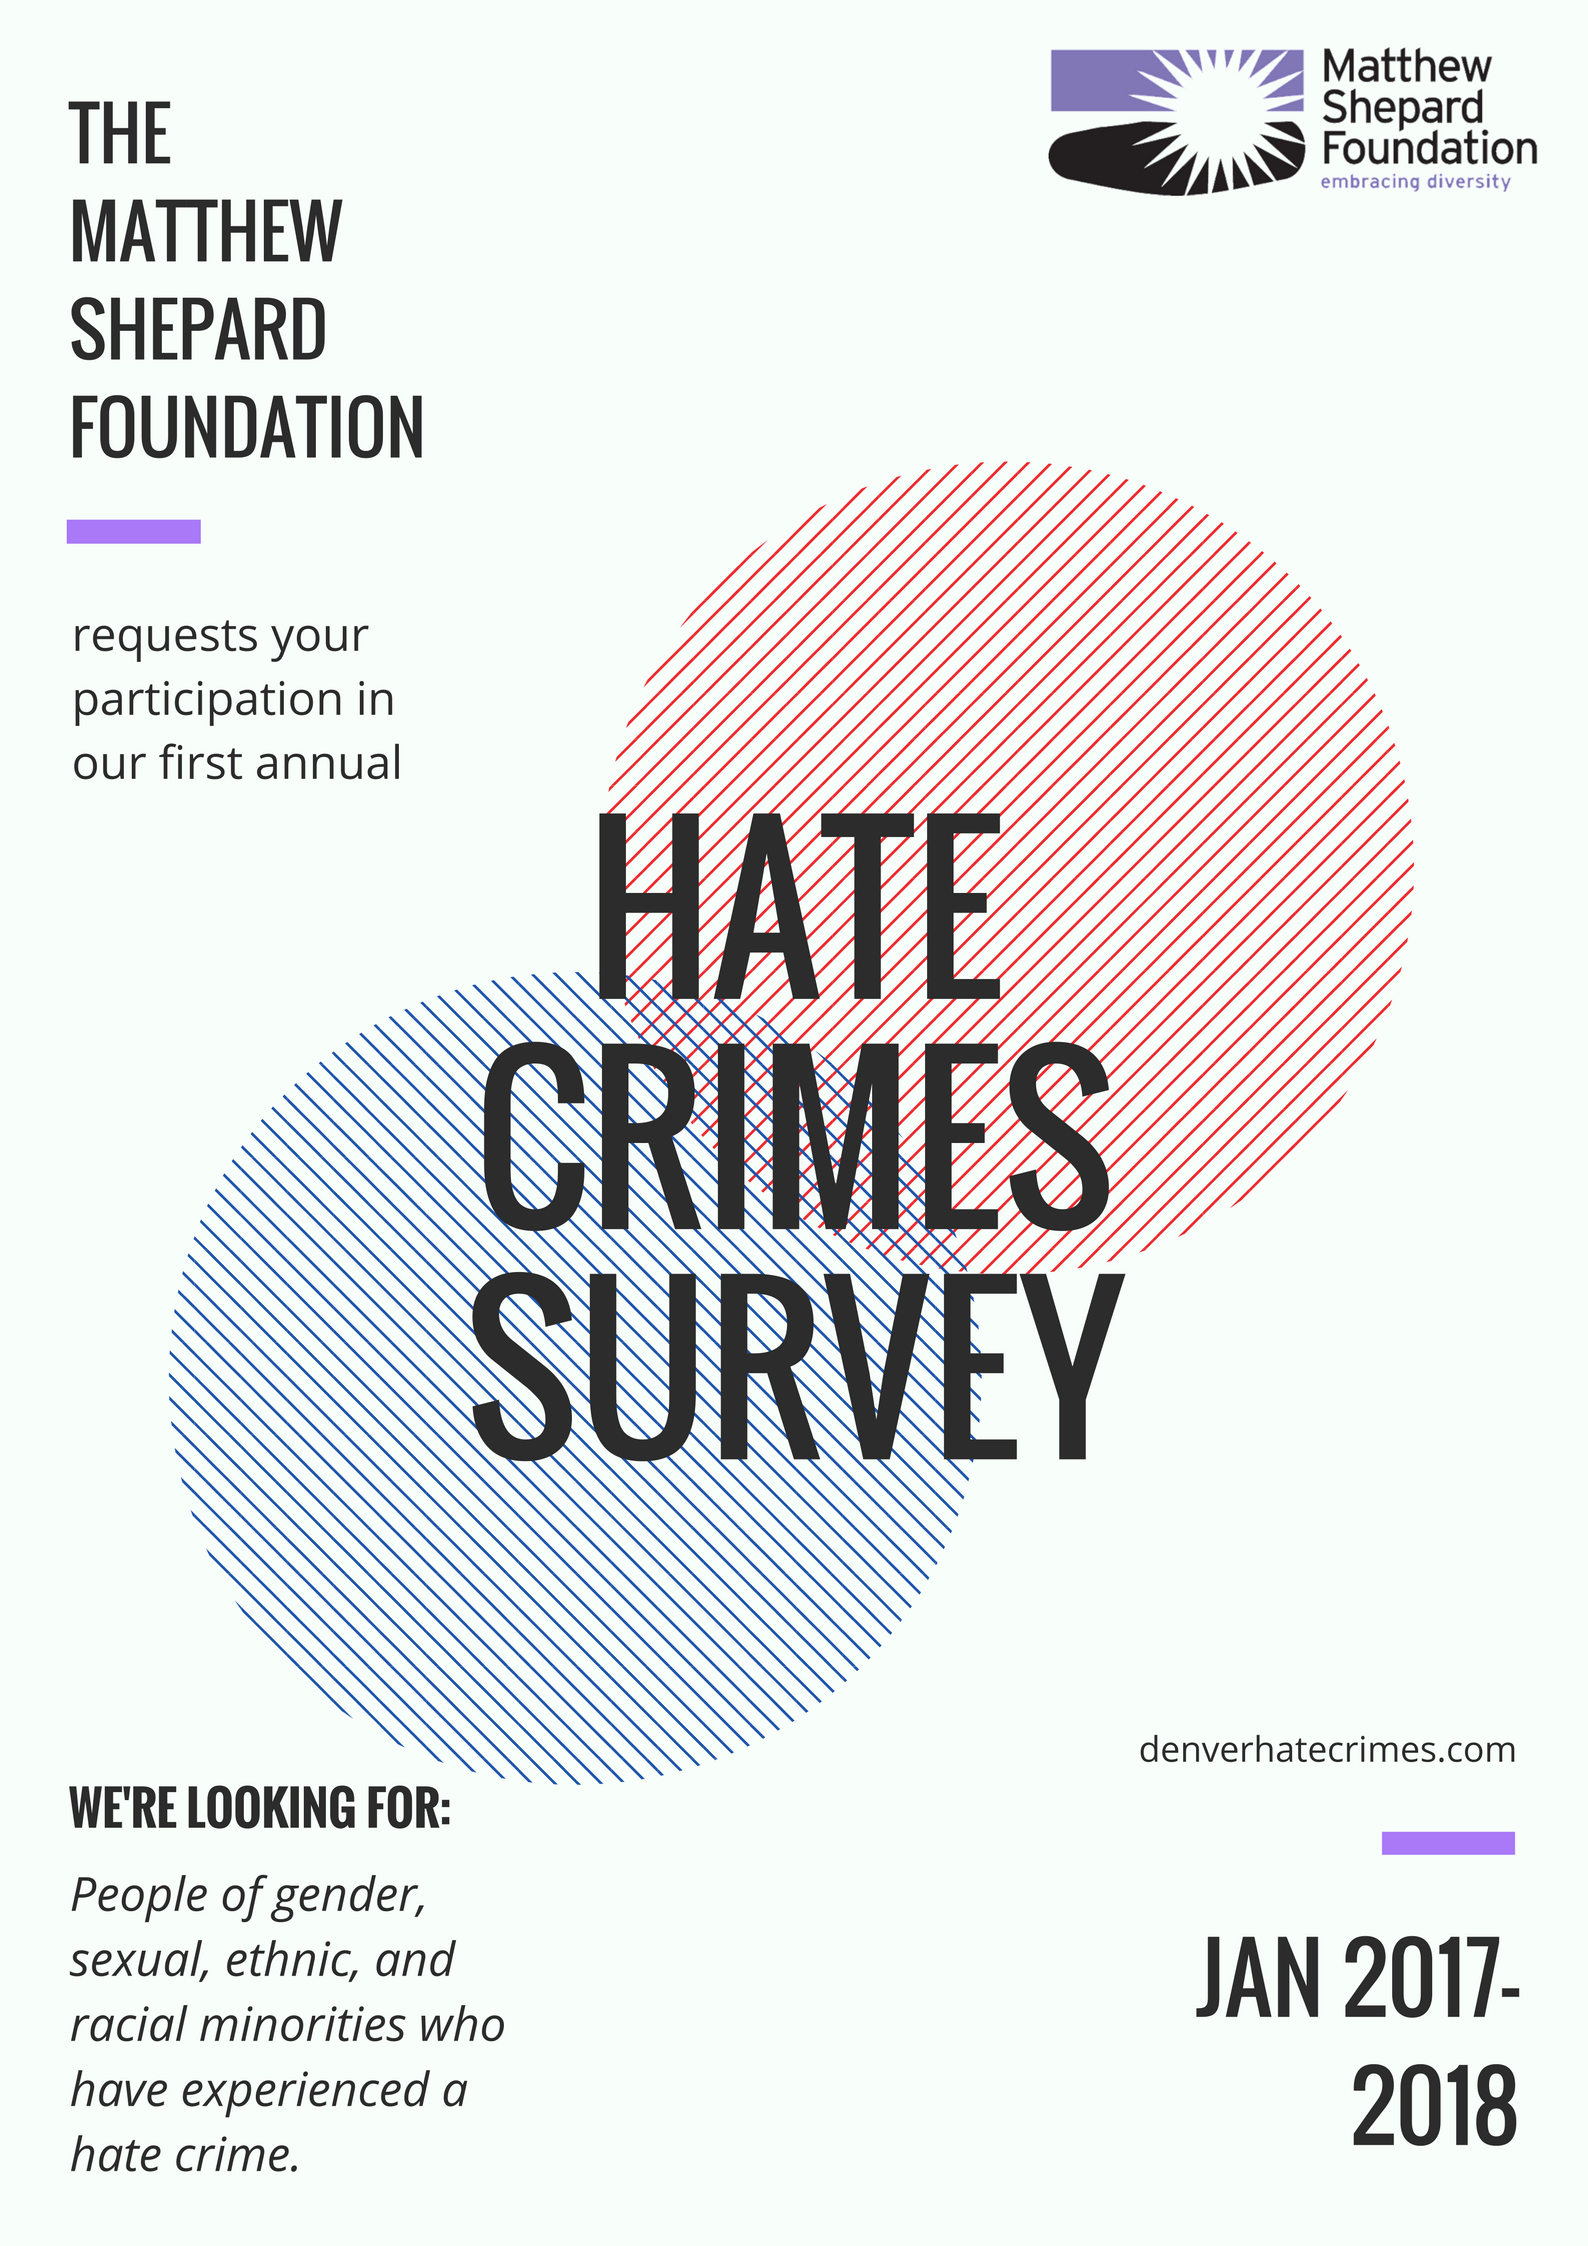 FOR IMMEDIATE RELEASE: MATTHEW SHEPARD FOUNDATION LAUNCHES HATE CRIME SURVEY